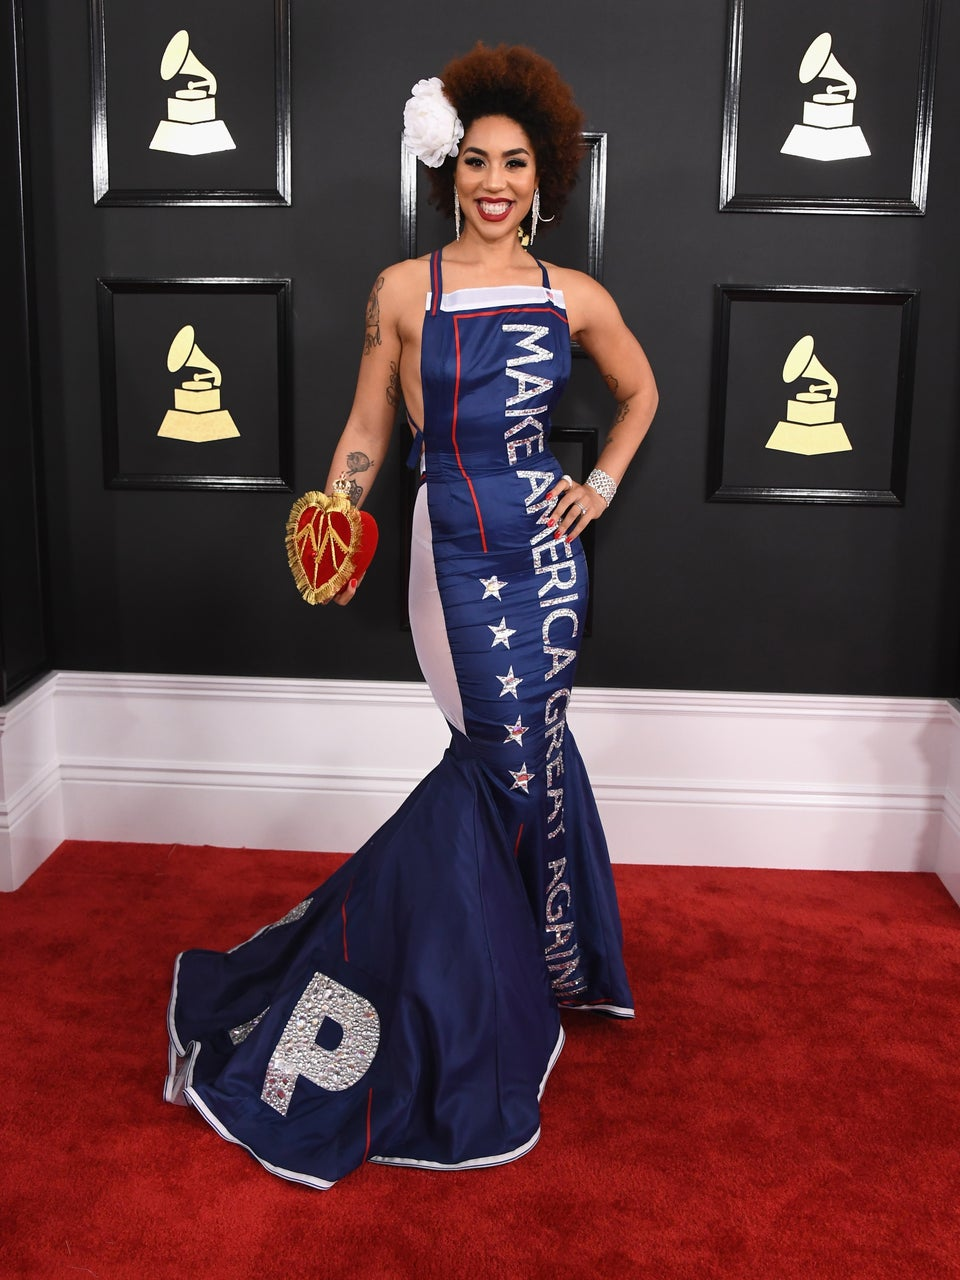 Joy Villa, MAGA Dress Wearer, Thinks Maxine Waters And Frederica Wilson Are Ruining The Country